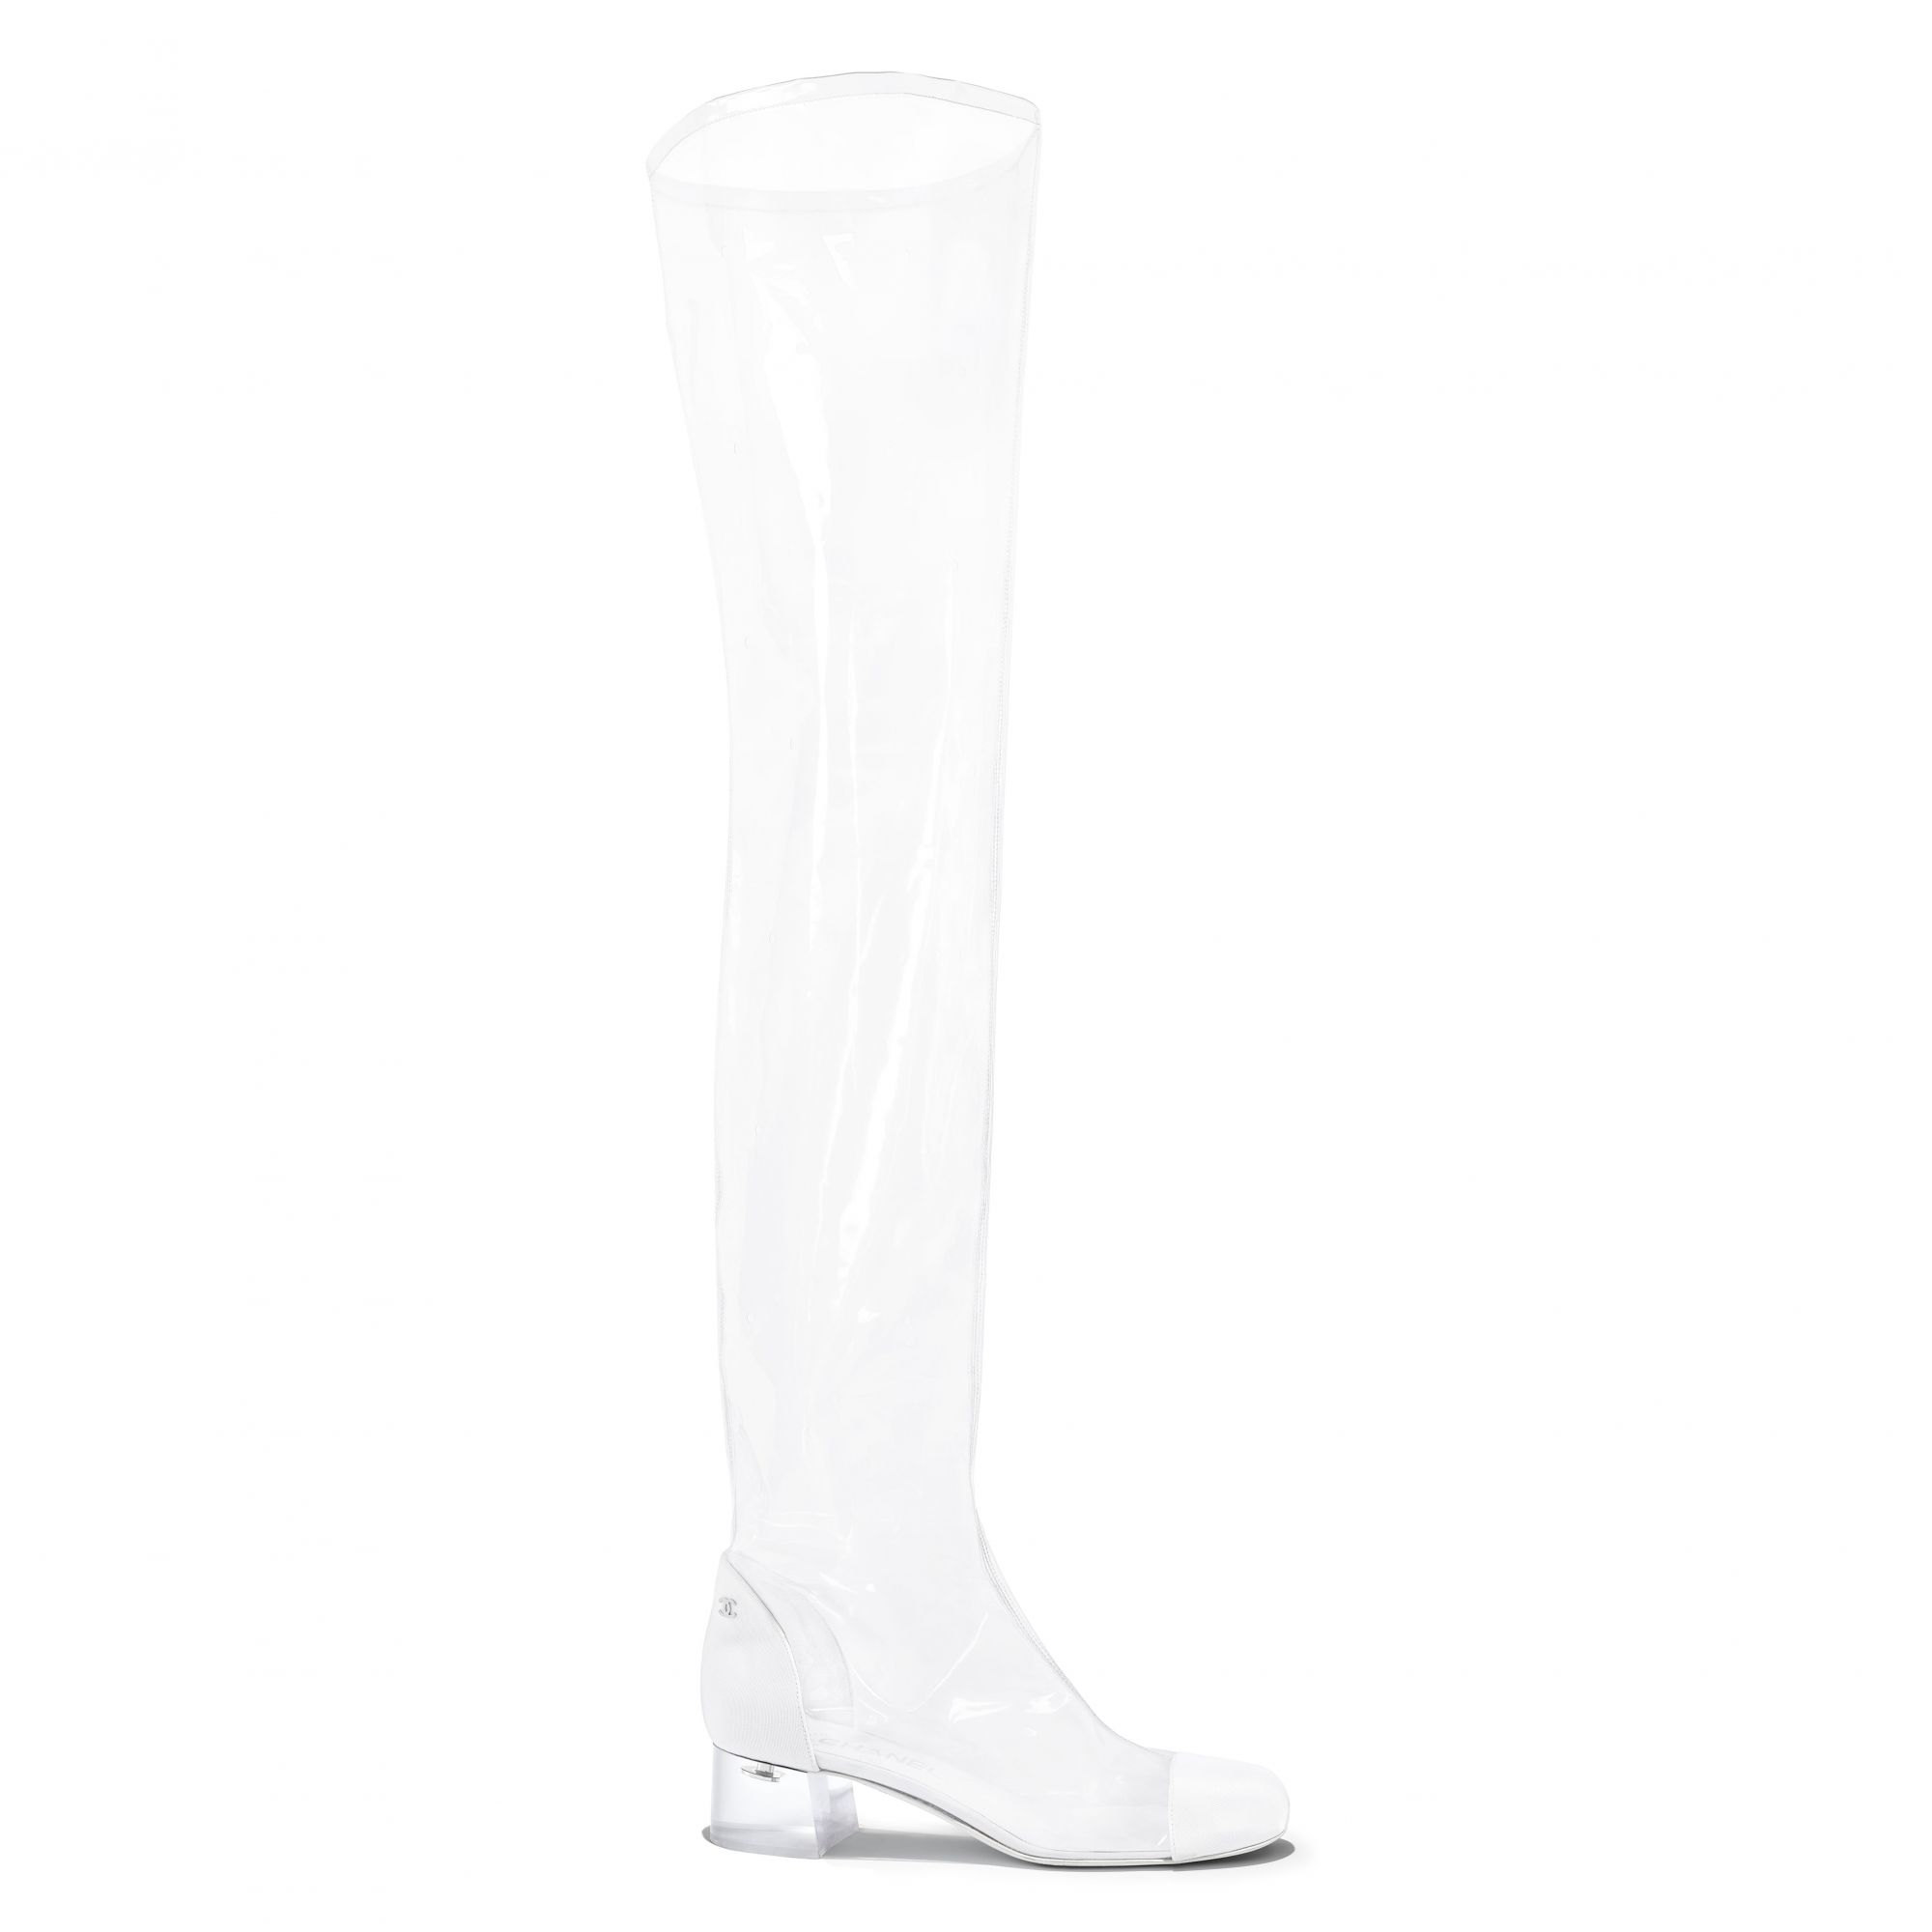 Thigh boot in transparent PVC and white grosgrain